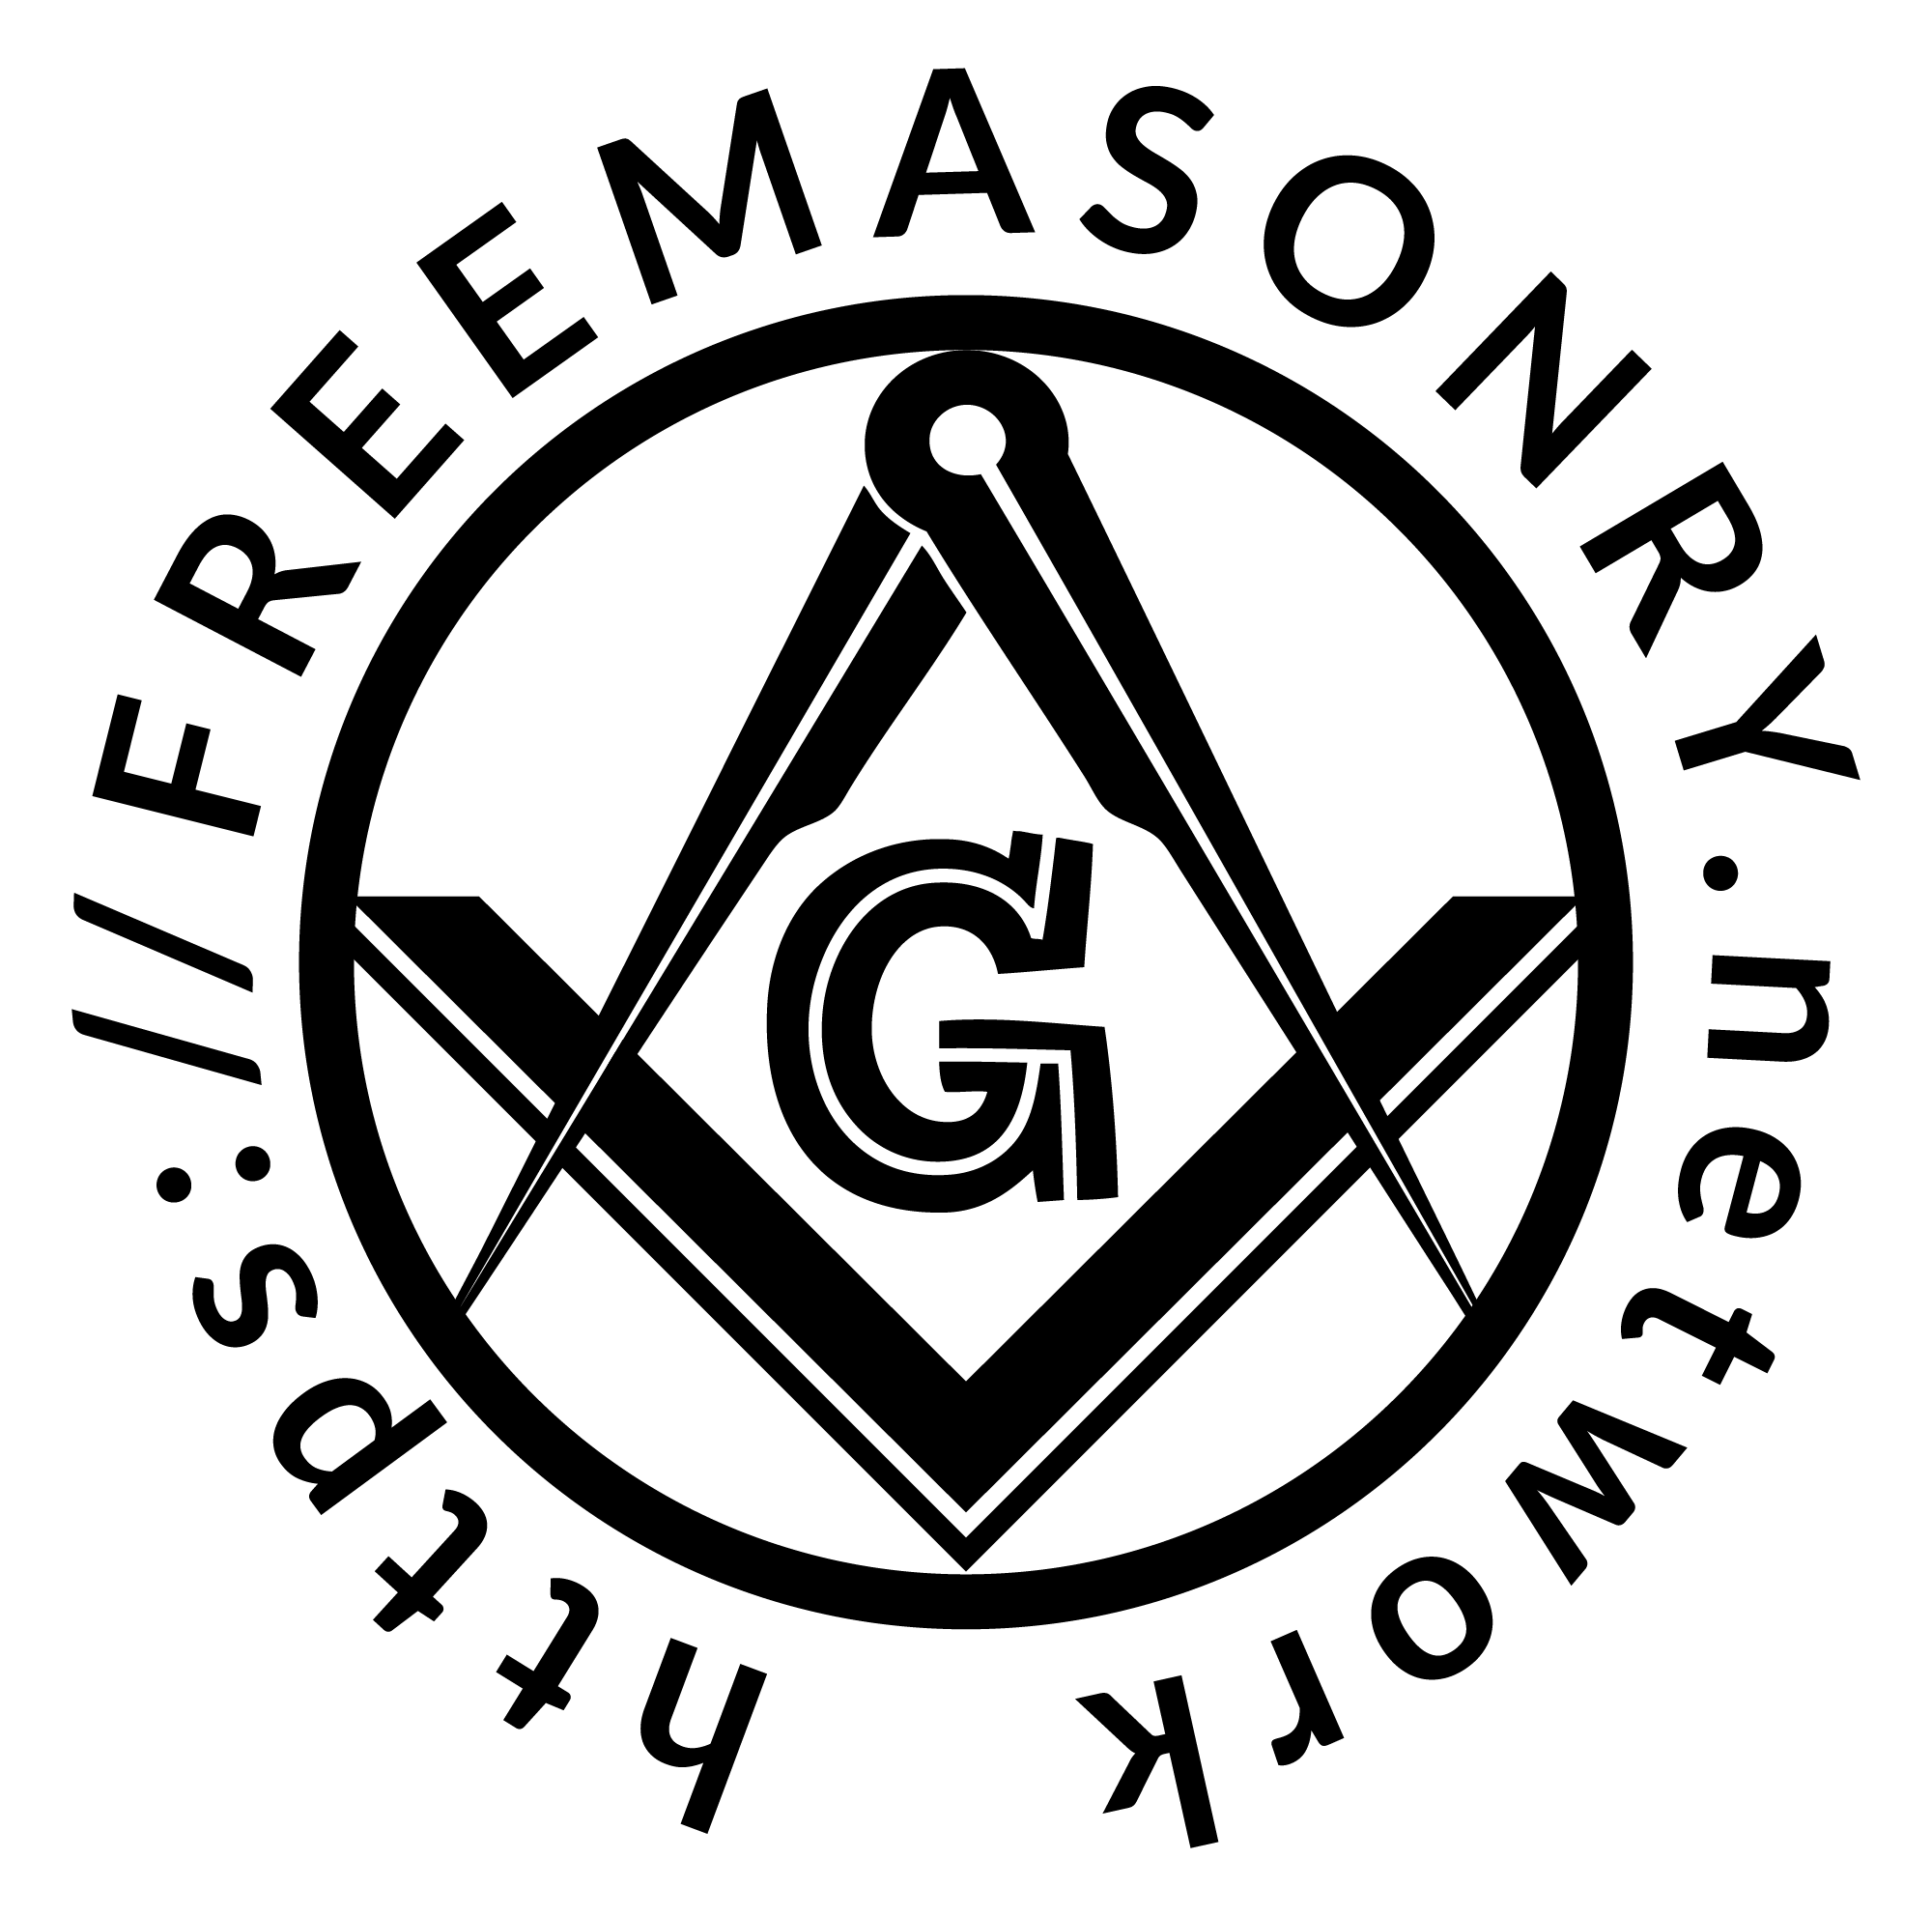 FEEDBACK TO MASONIC PRESENTATIONS